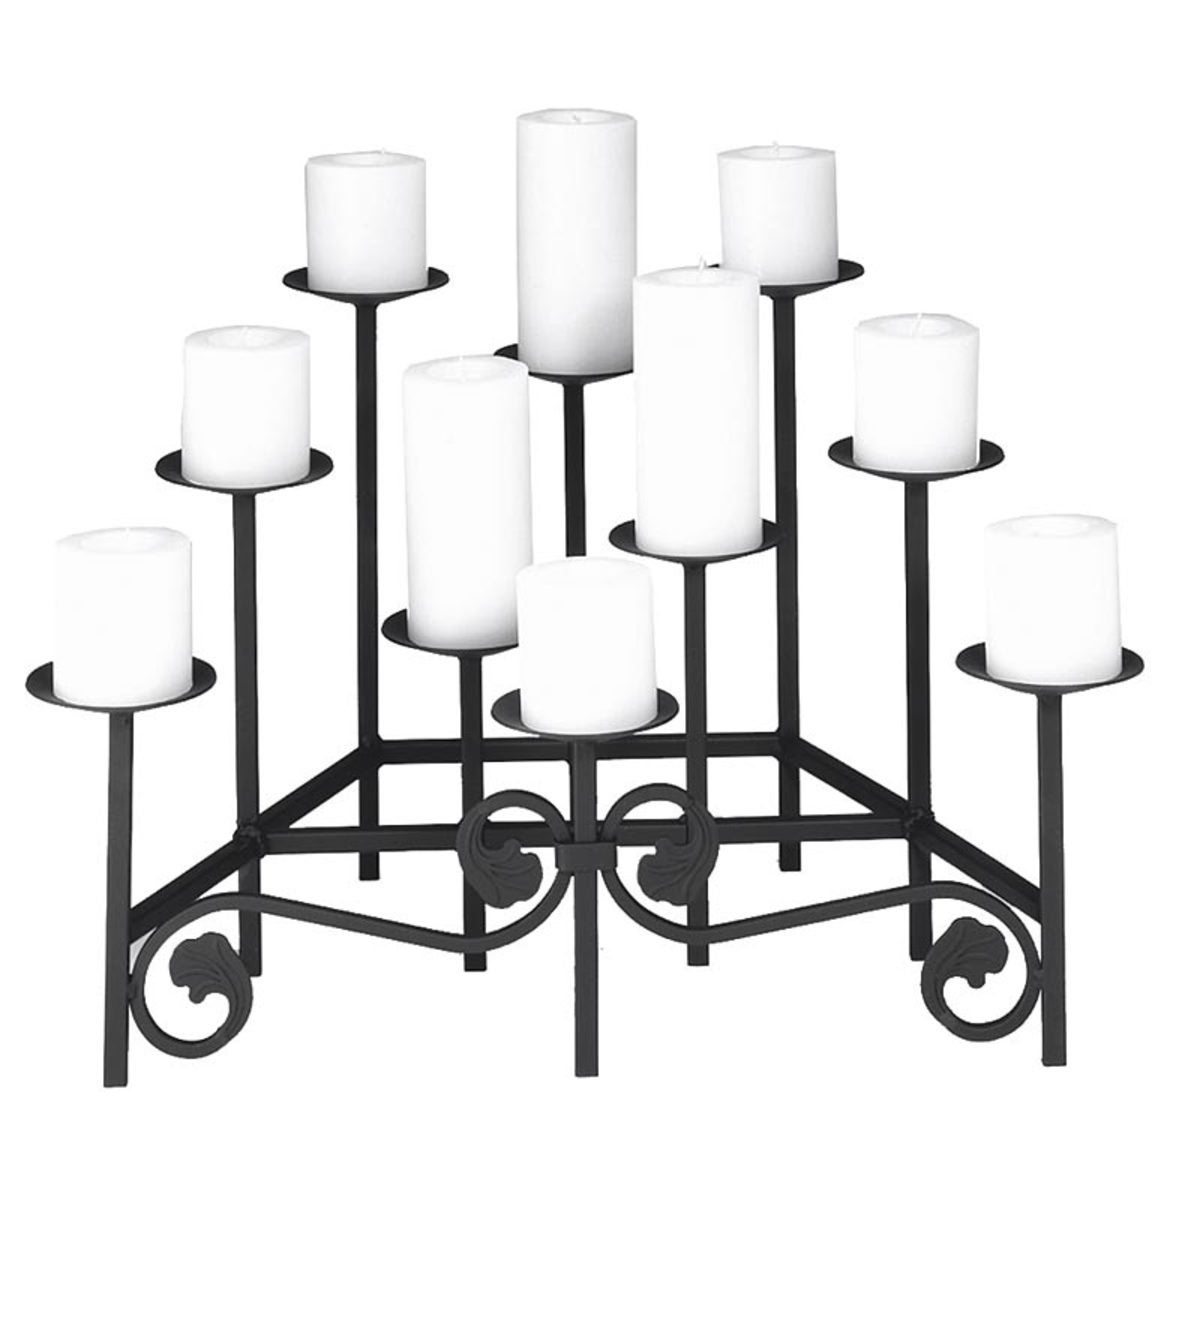 Iron Fireplace Candelabra with Ten Tiers - Black